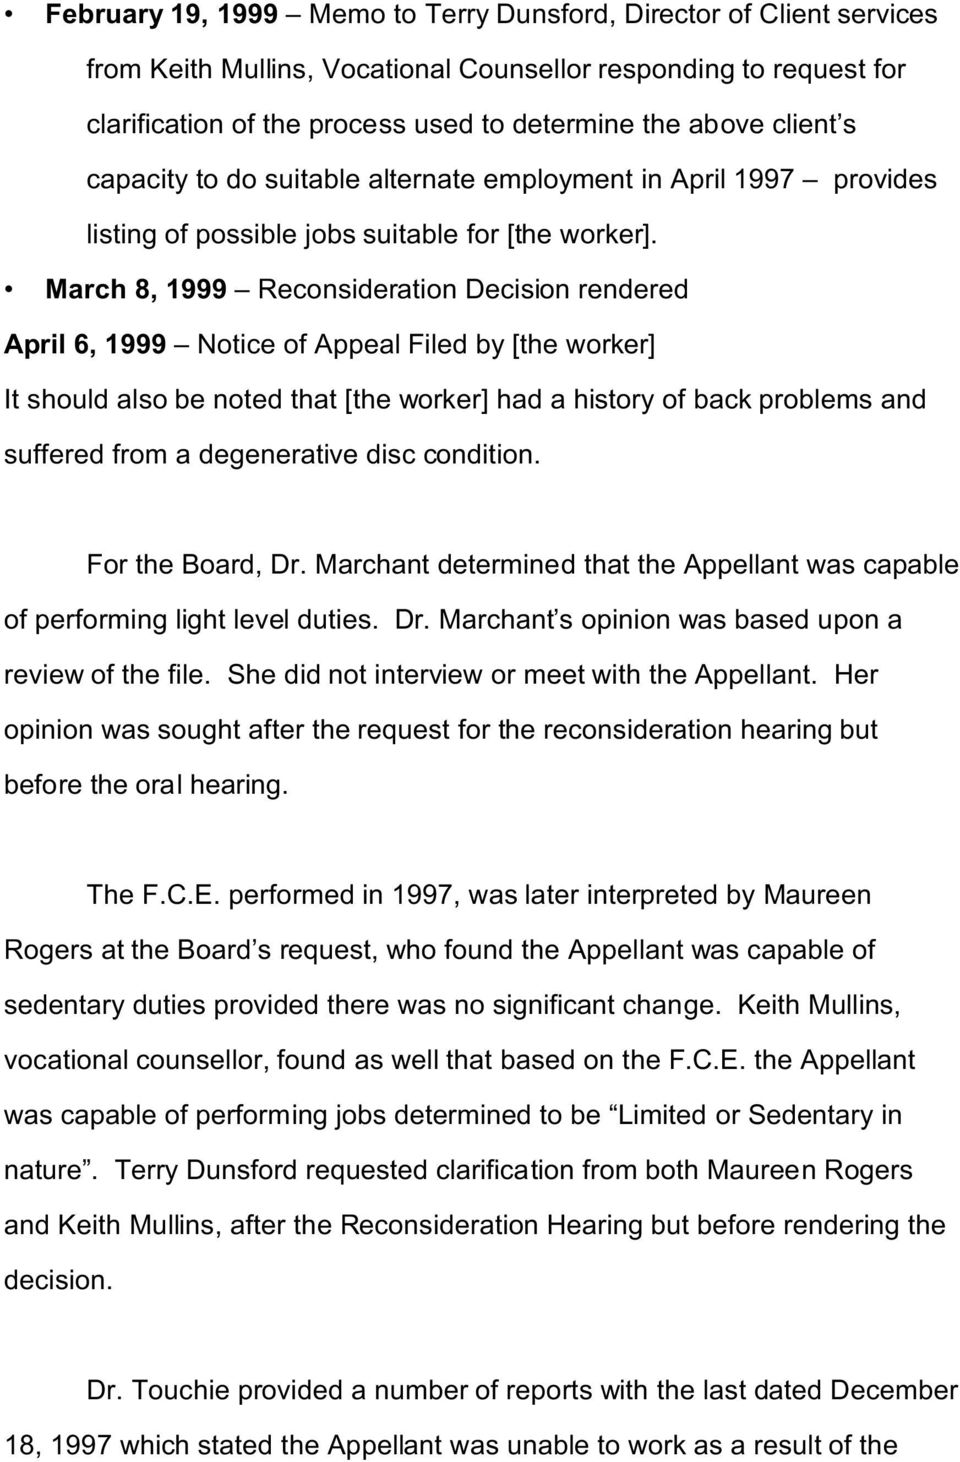 March 8, 1999 Reconsideration Decision rendered April 6, 1999 Notice of Appeal Filed by [the worker] It should also be noted that [the worker] had a history of back problems and suffered from a